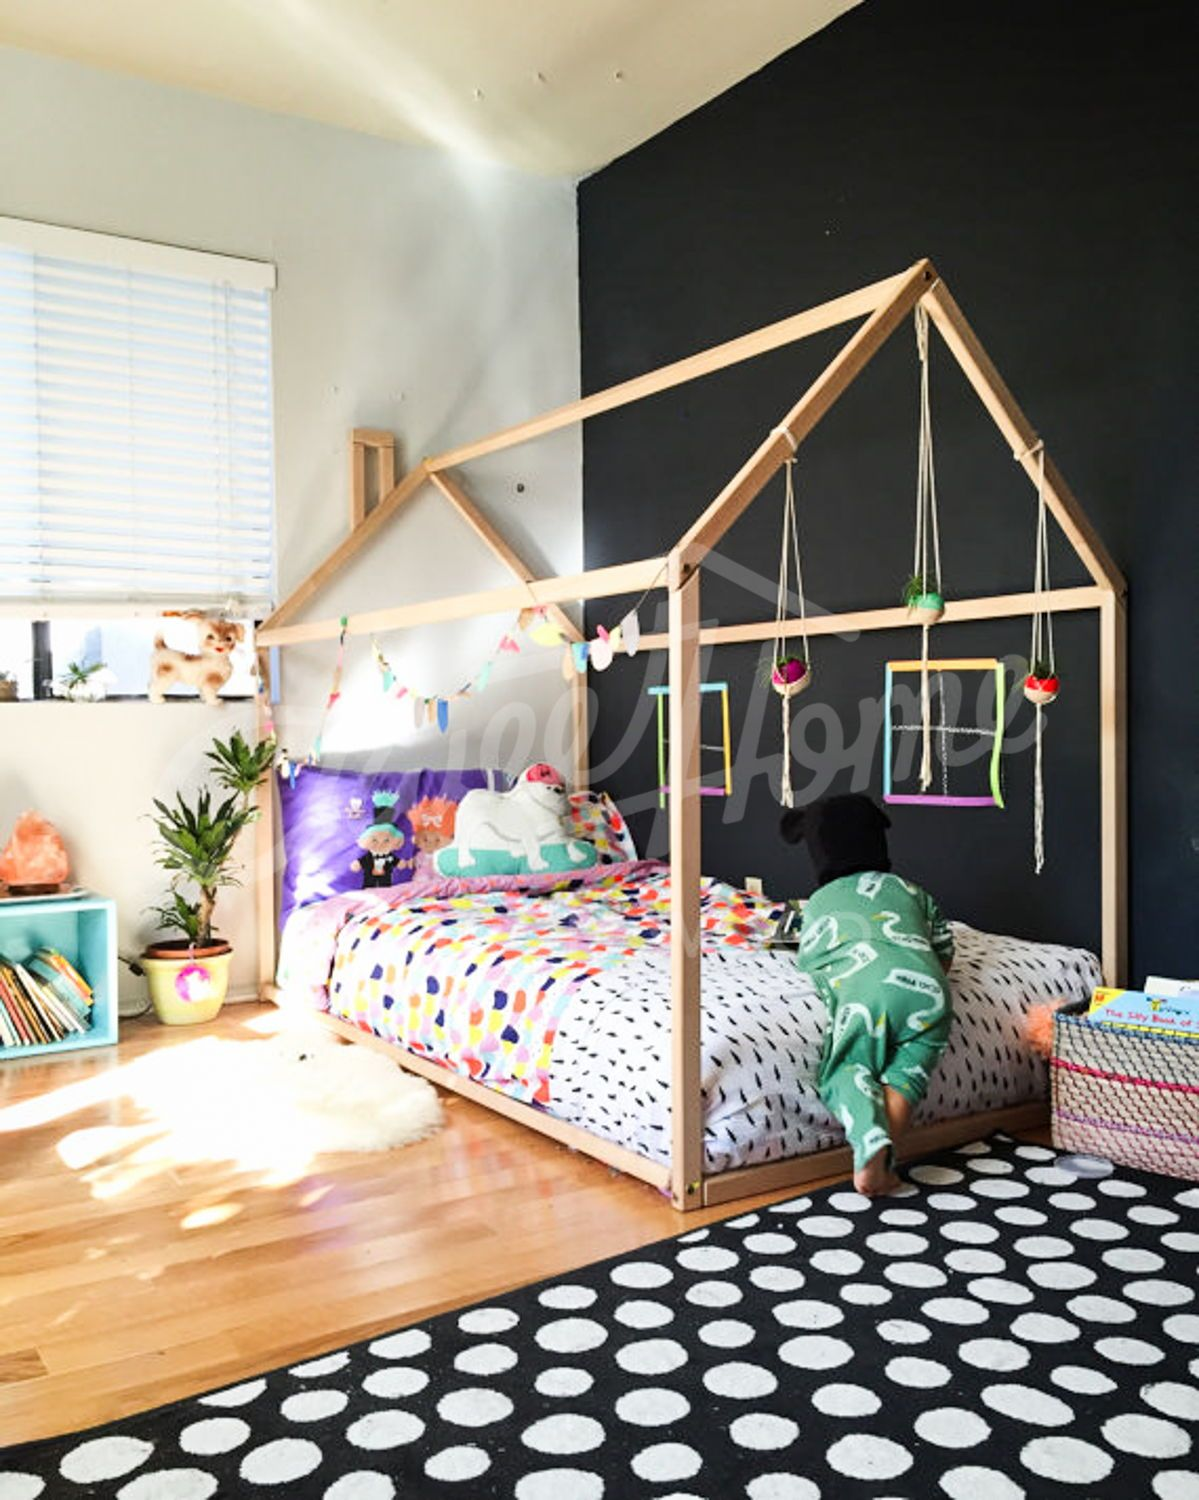 Toddler Bed House Bed Children Bed Wooden House Tent Bed Wood House Wood Nursery Kids Teepee Bed Wood Bed Frame Wood House Bed Kids Gift In 2020 Kids Bed Frames House